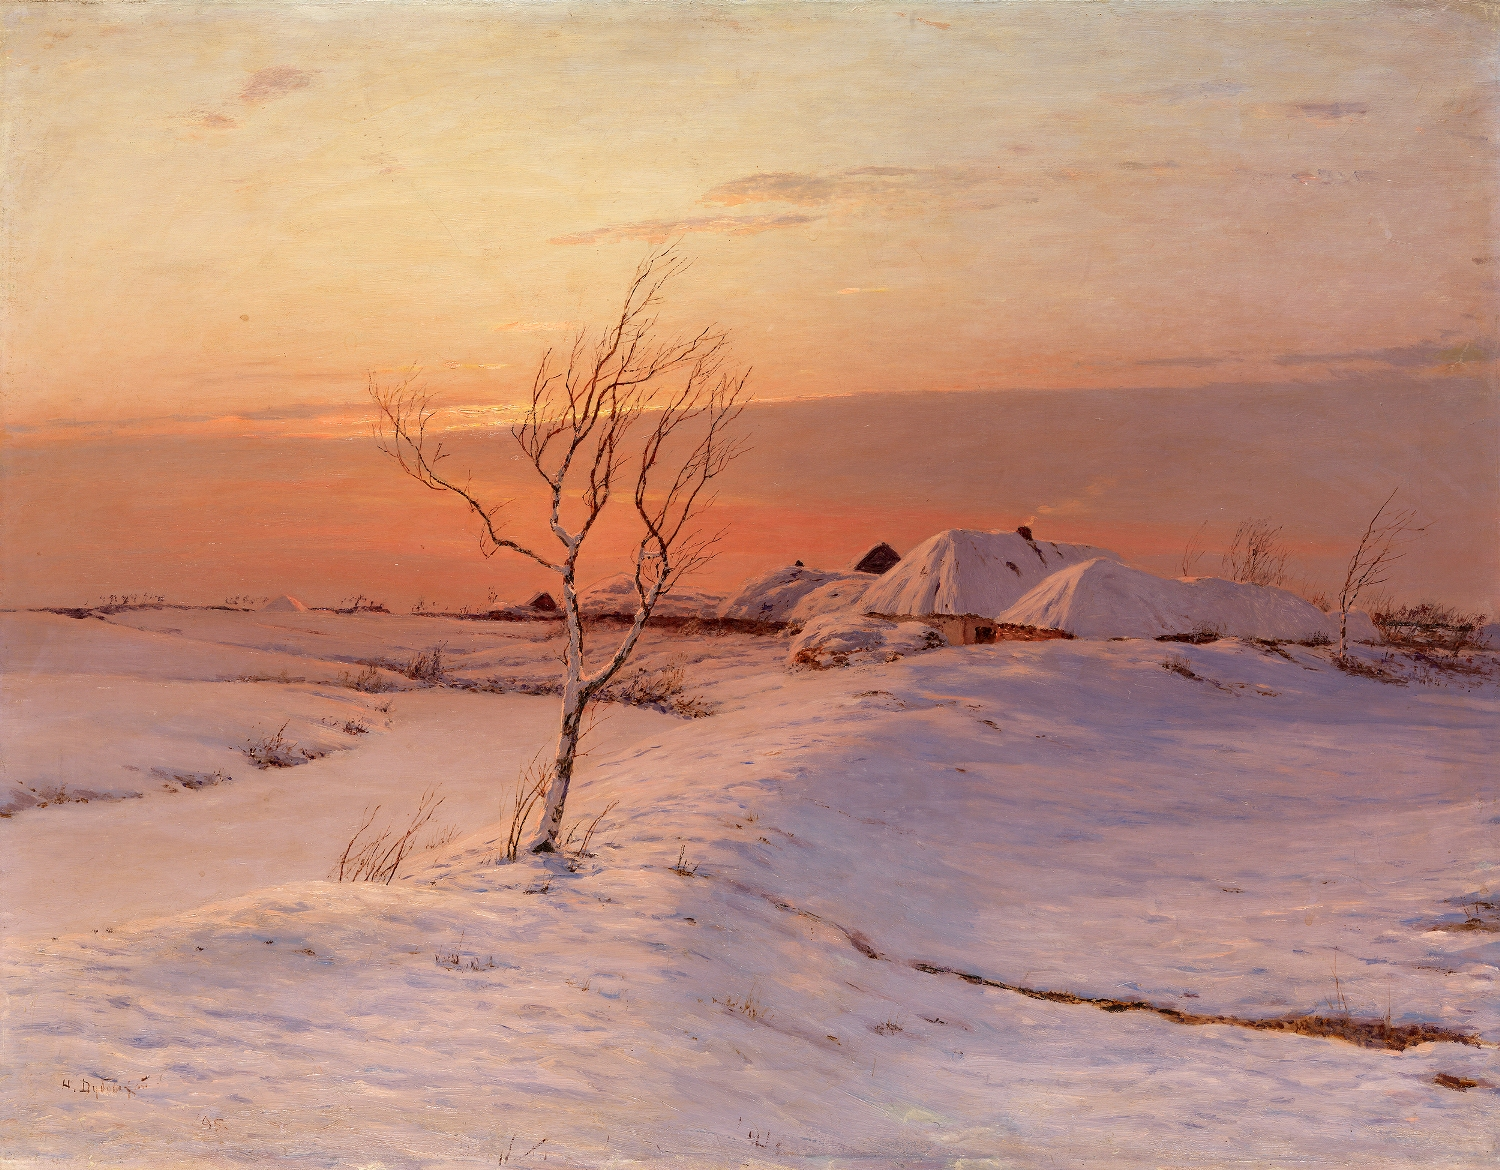 DUBOVSKOY, NIKOLAI A Winter's Evening